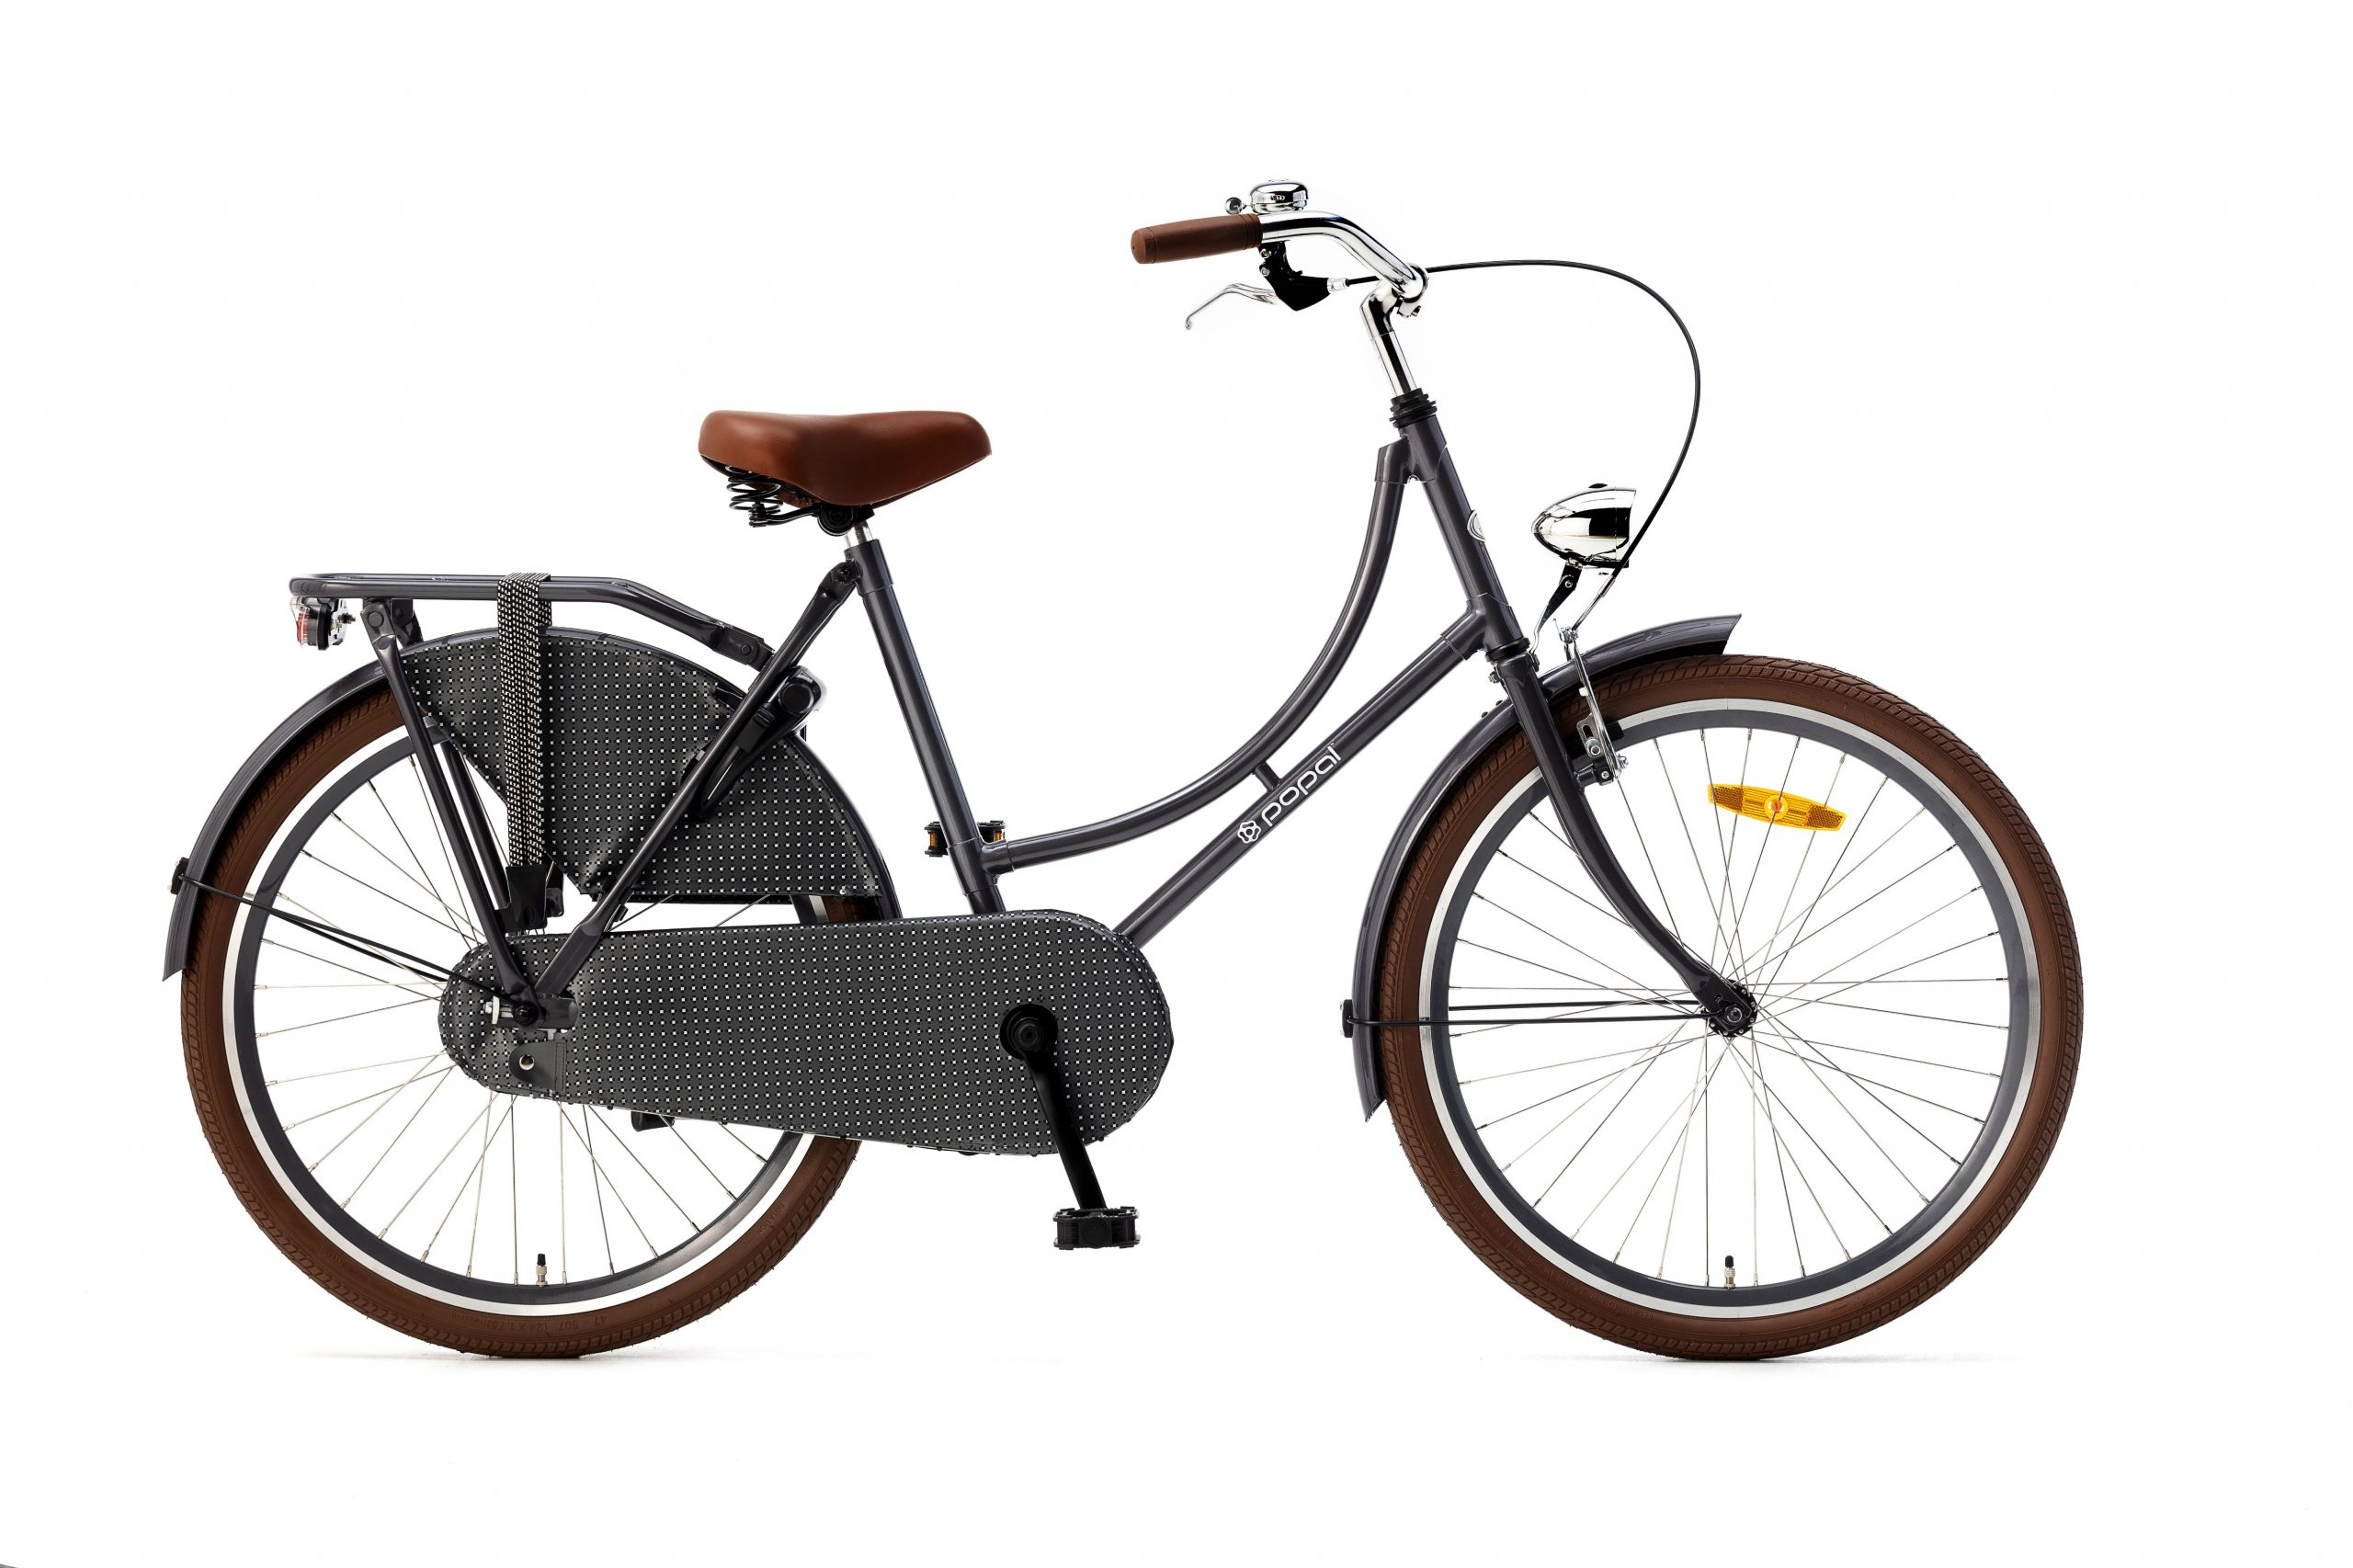 Omafiets N3 24 inch